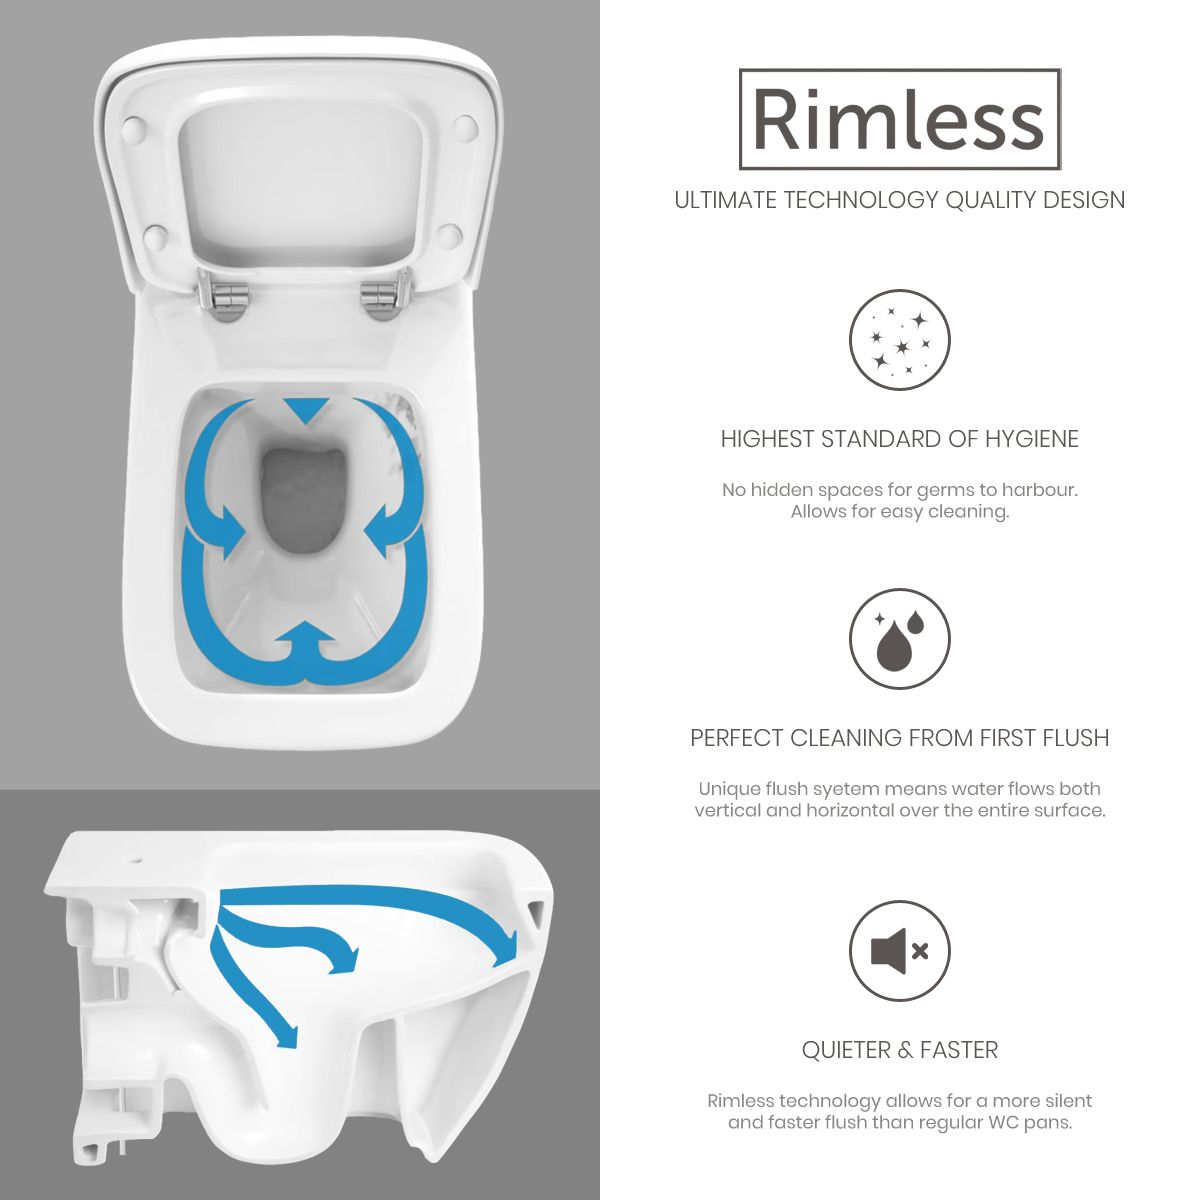 RAK Rimless Technology